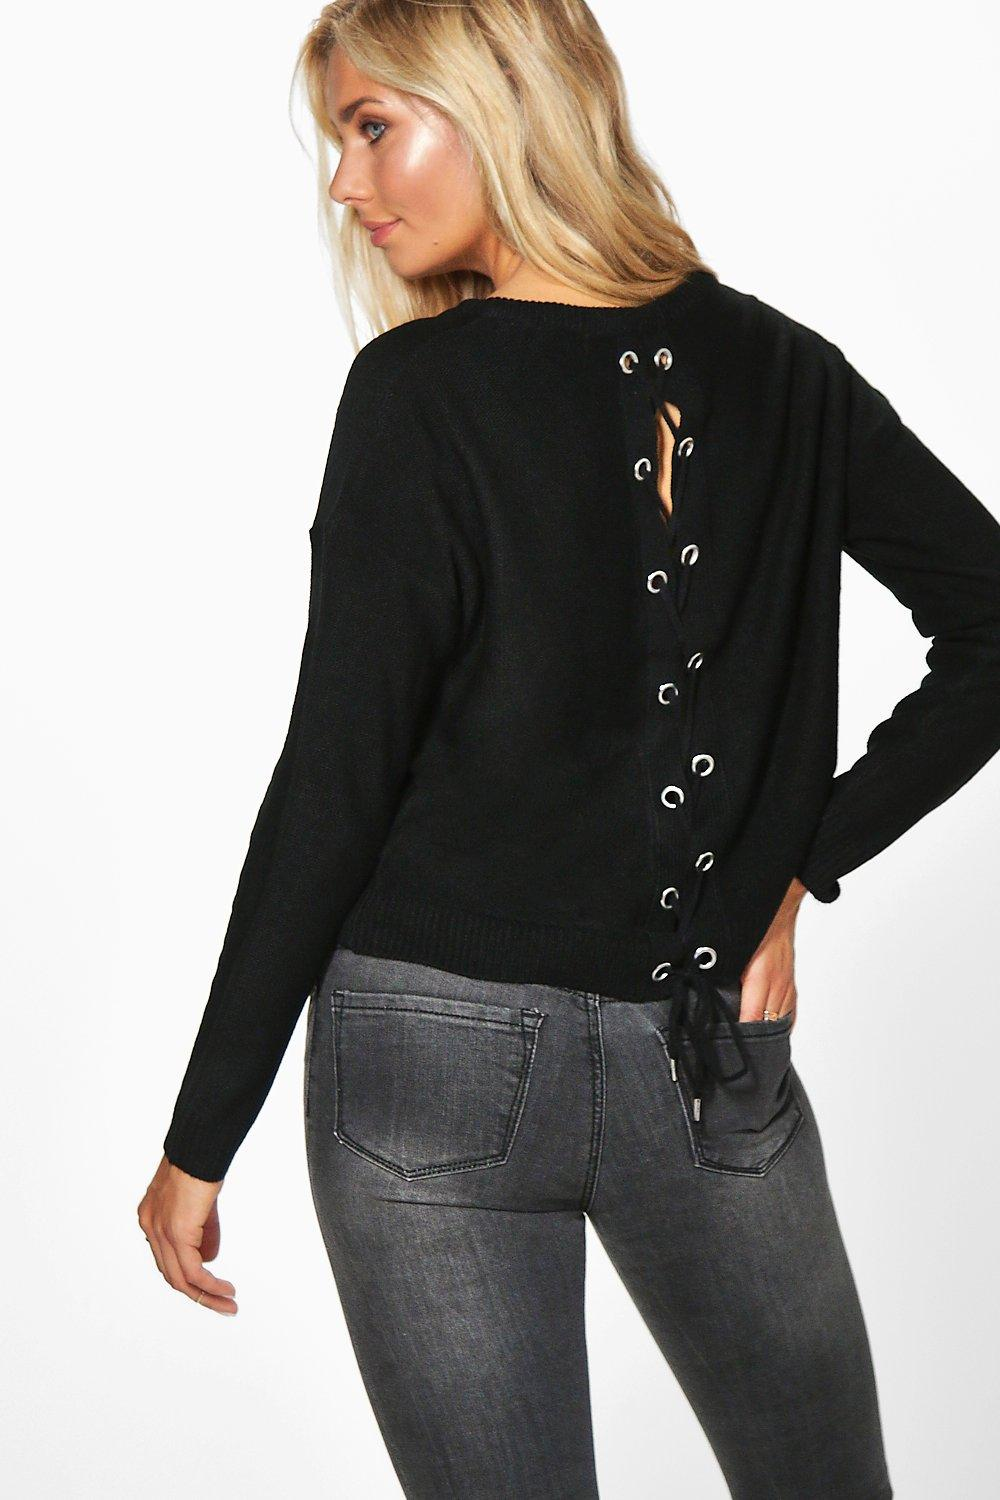 Lillie Lace Up Eyelet Detail Jumper